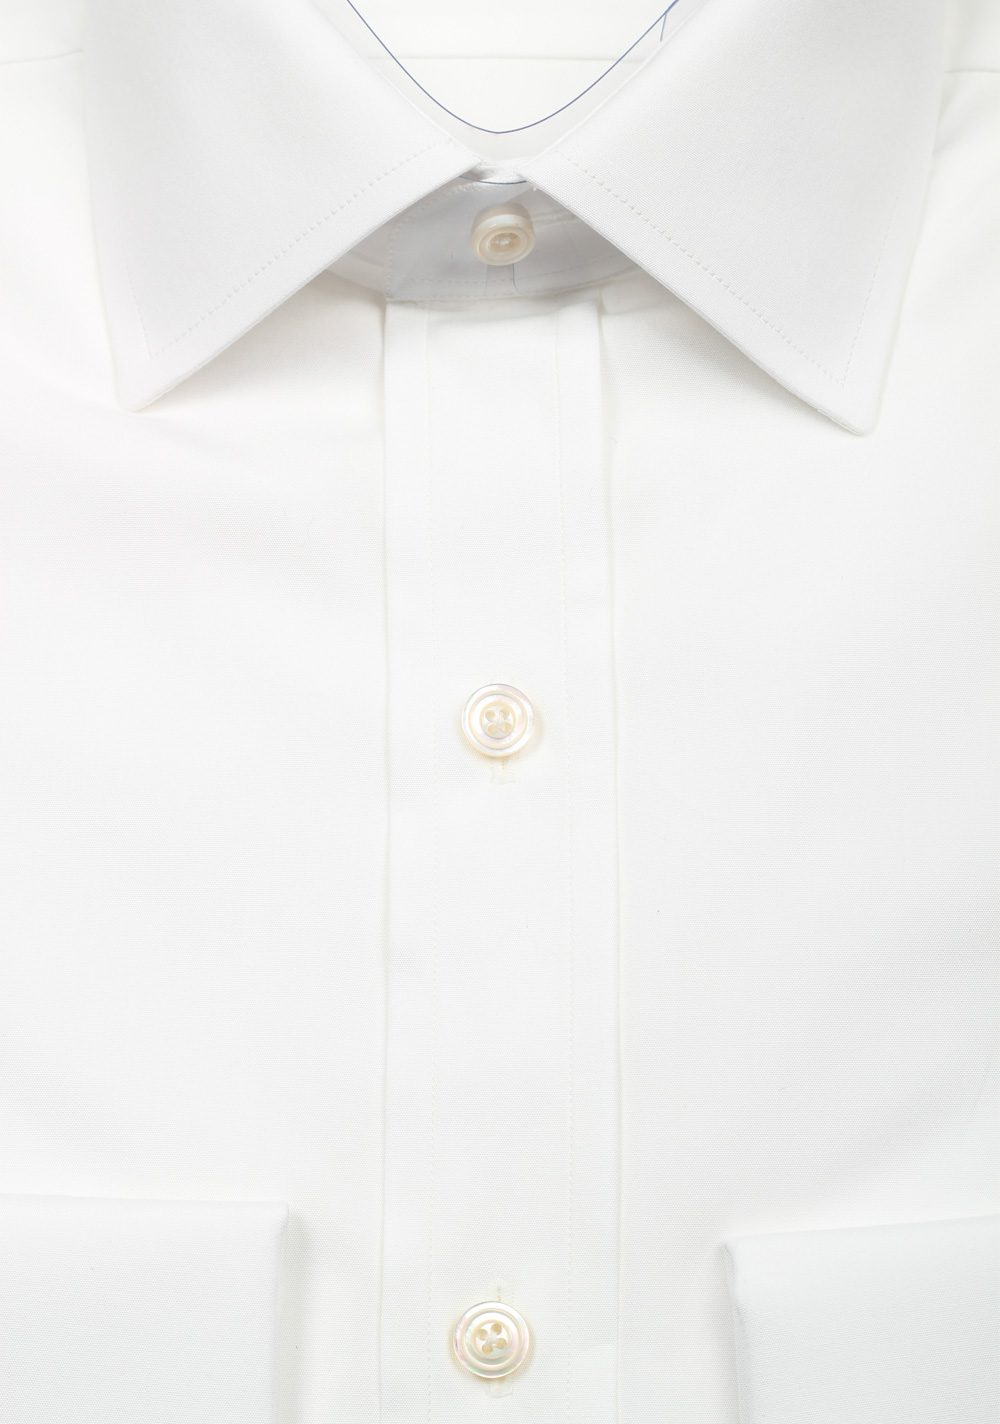 TOM FORD Solid White Dress Spread Shirt French Cuffs Size 38 / 15 U.S. Slim Fit   Costume Limité